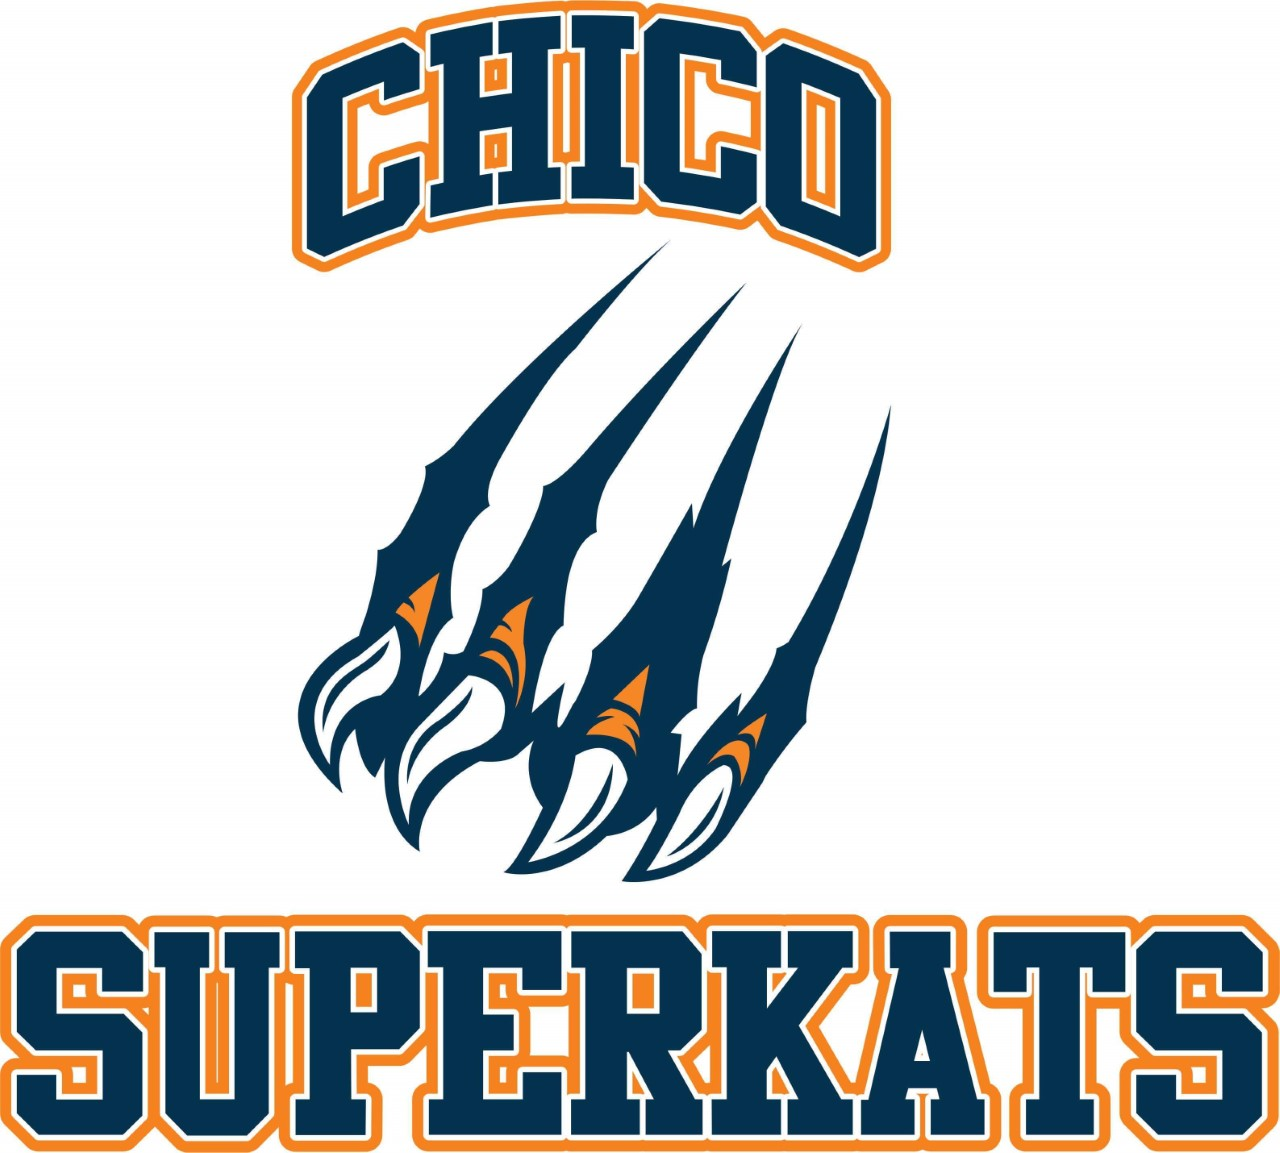 Chico Superkats